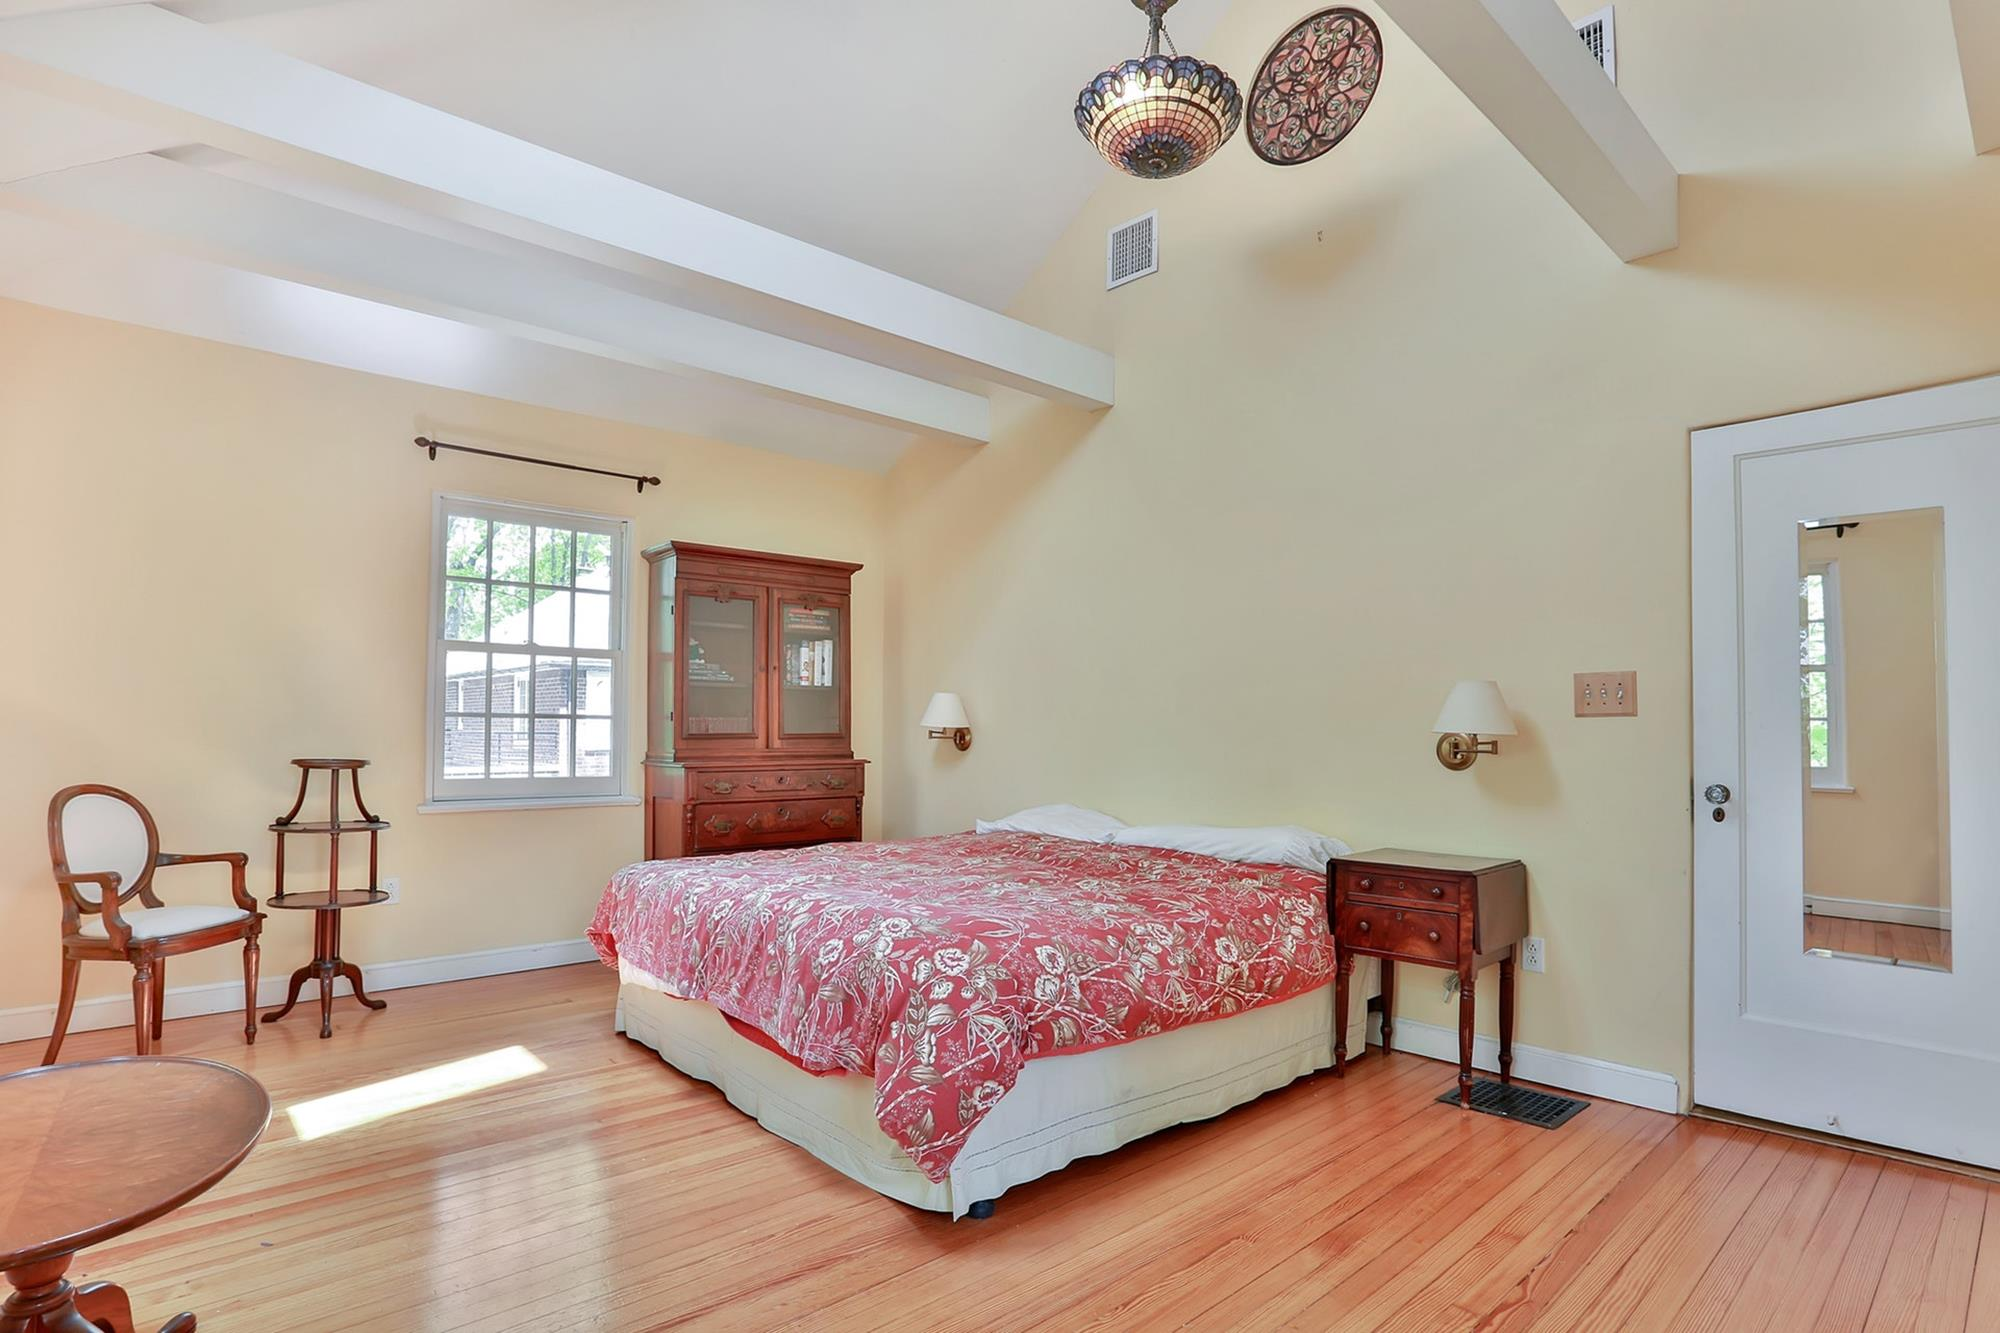 Renovated 4-Bd. 1920s Mediterranean-Style House on Delafield Avenue